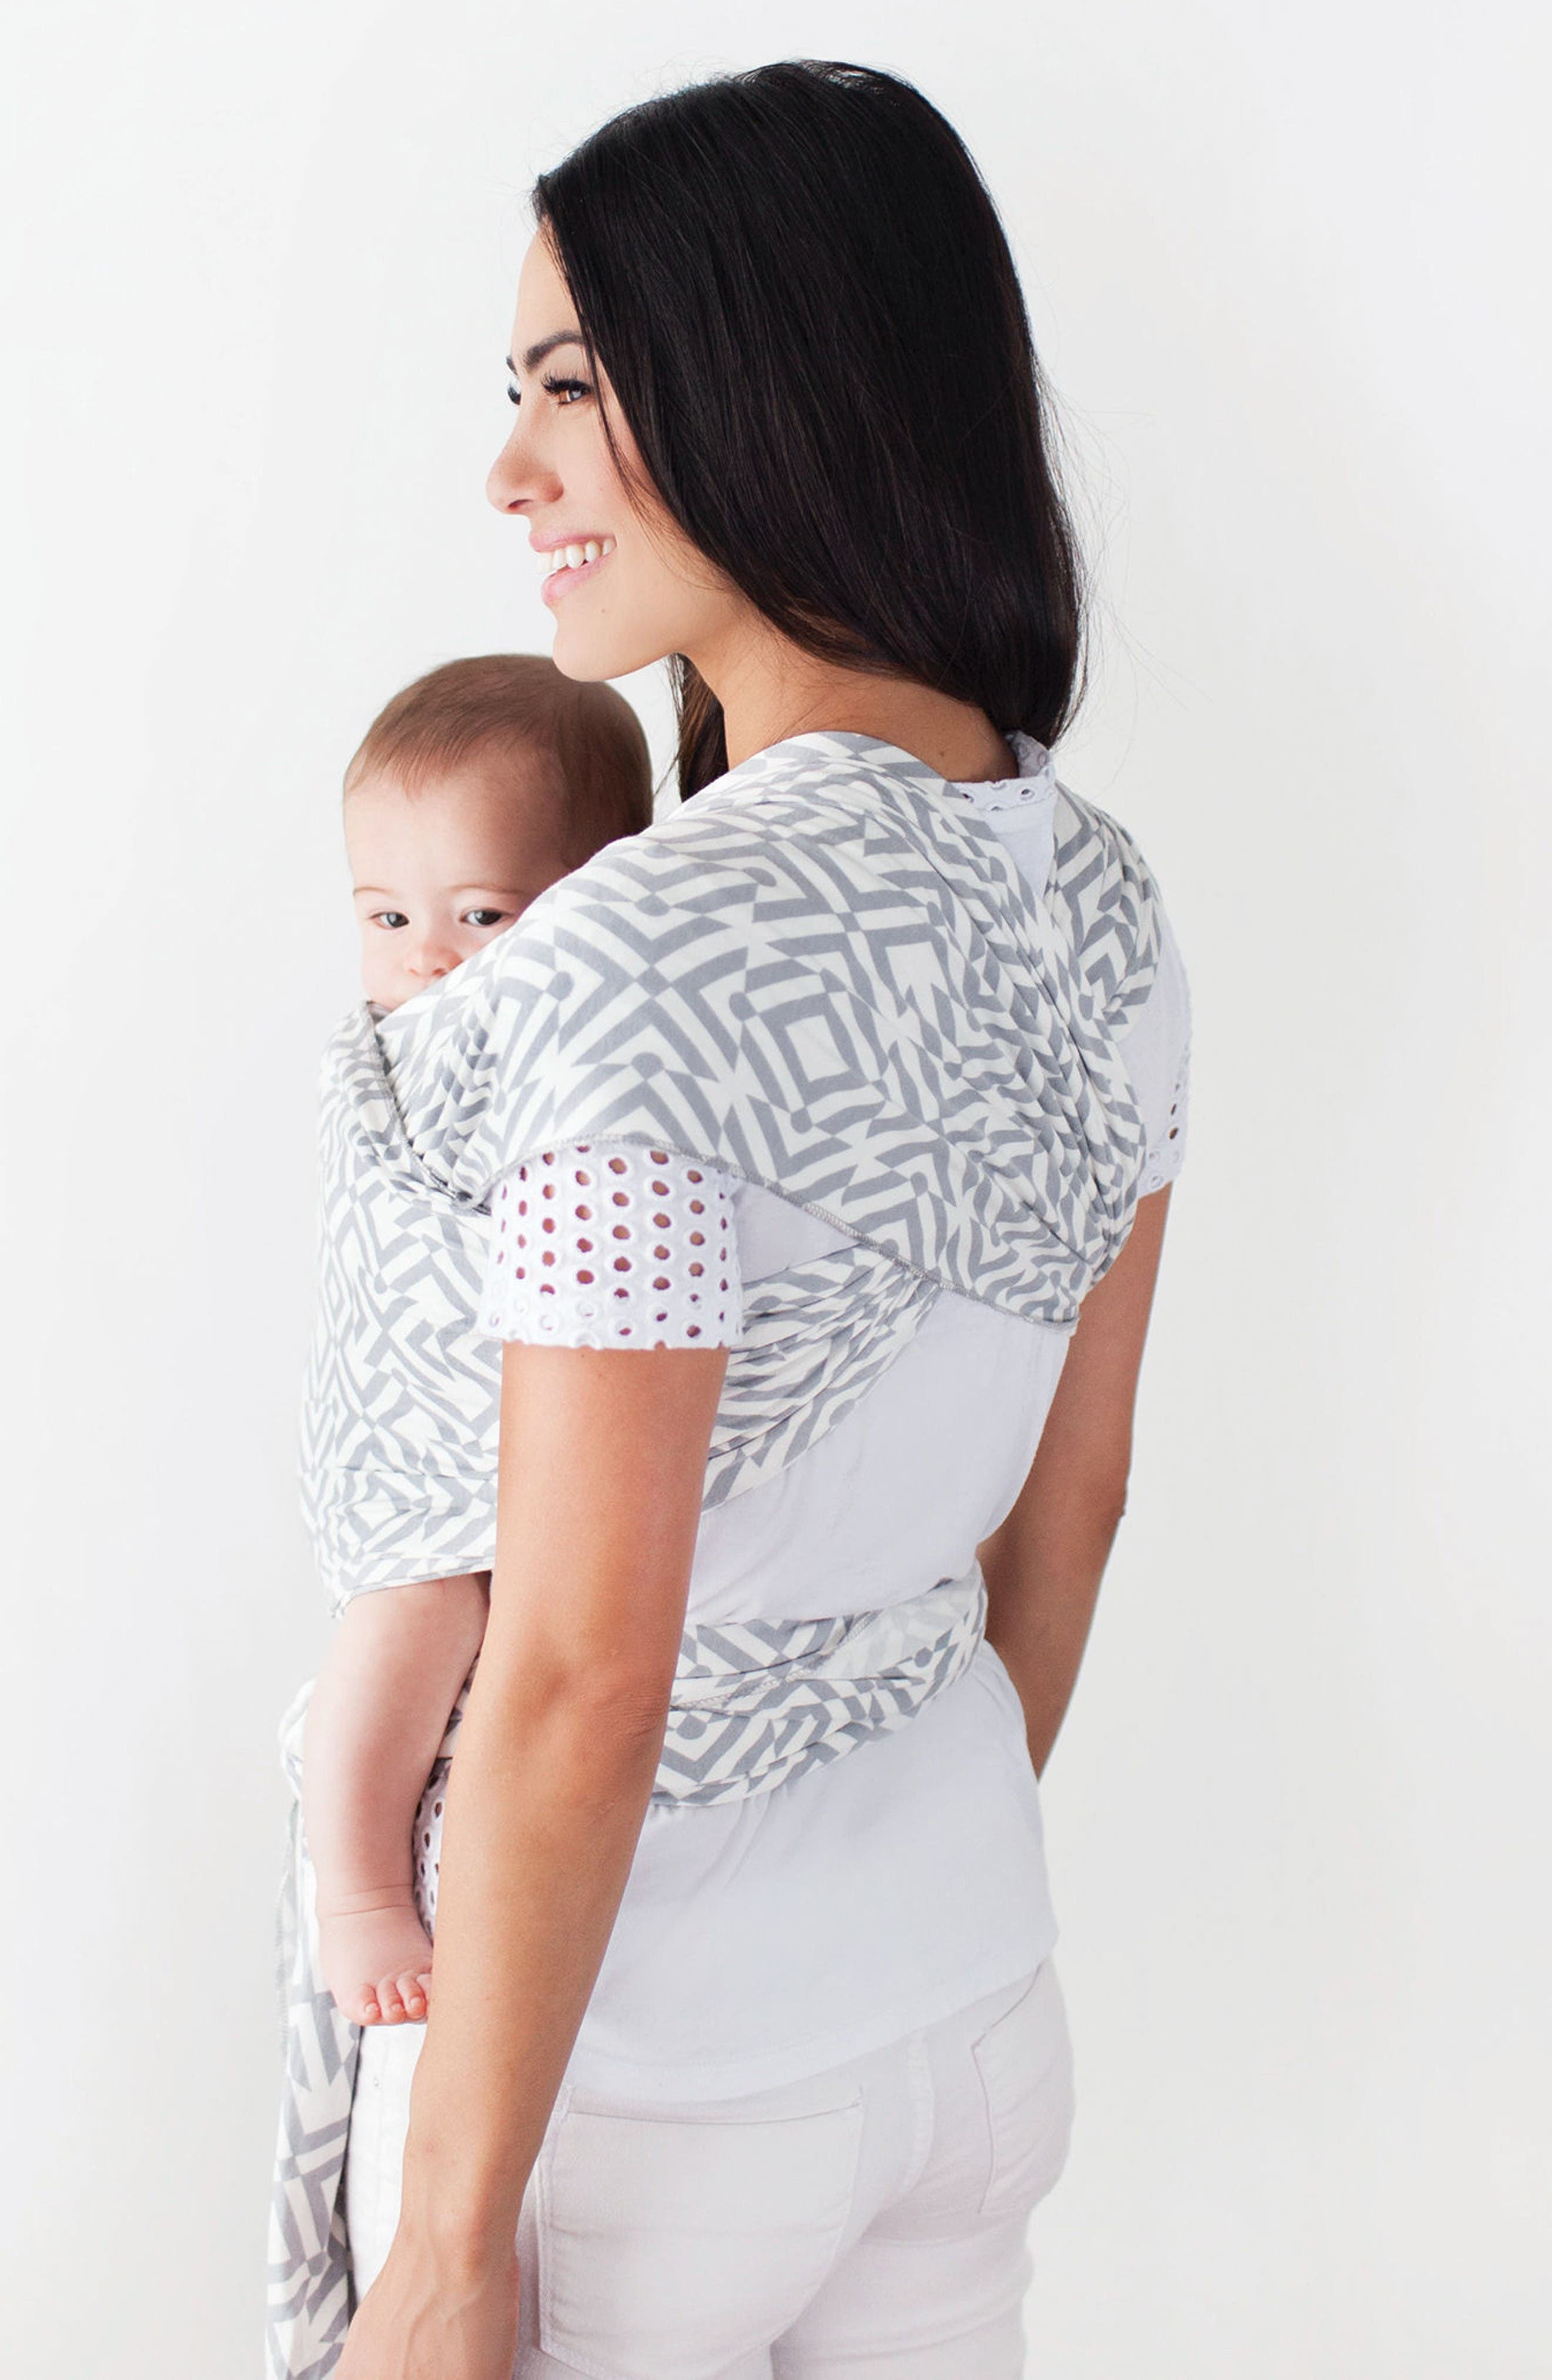 Wrap x Petunia Pickle Bottom Baby Carrier,                             Alternate thumbnail 2, color,                             Grey/ White